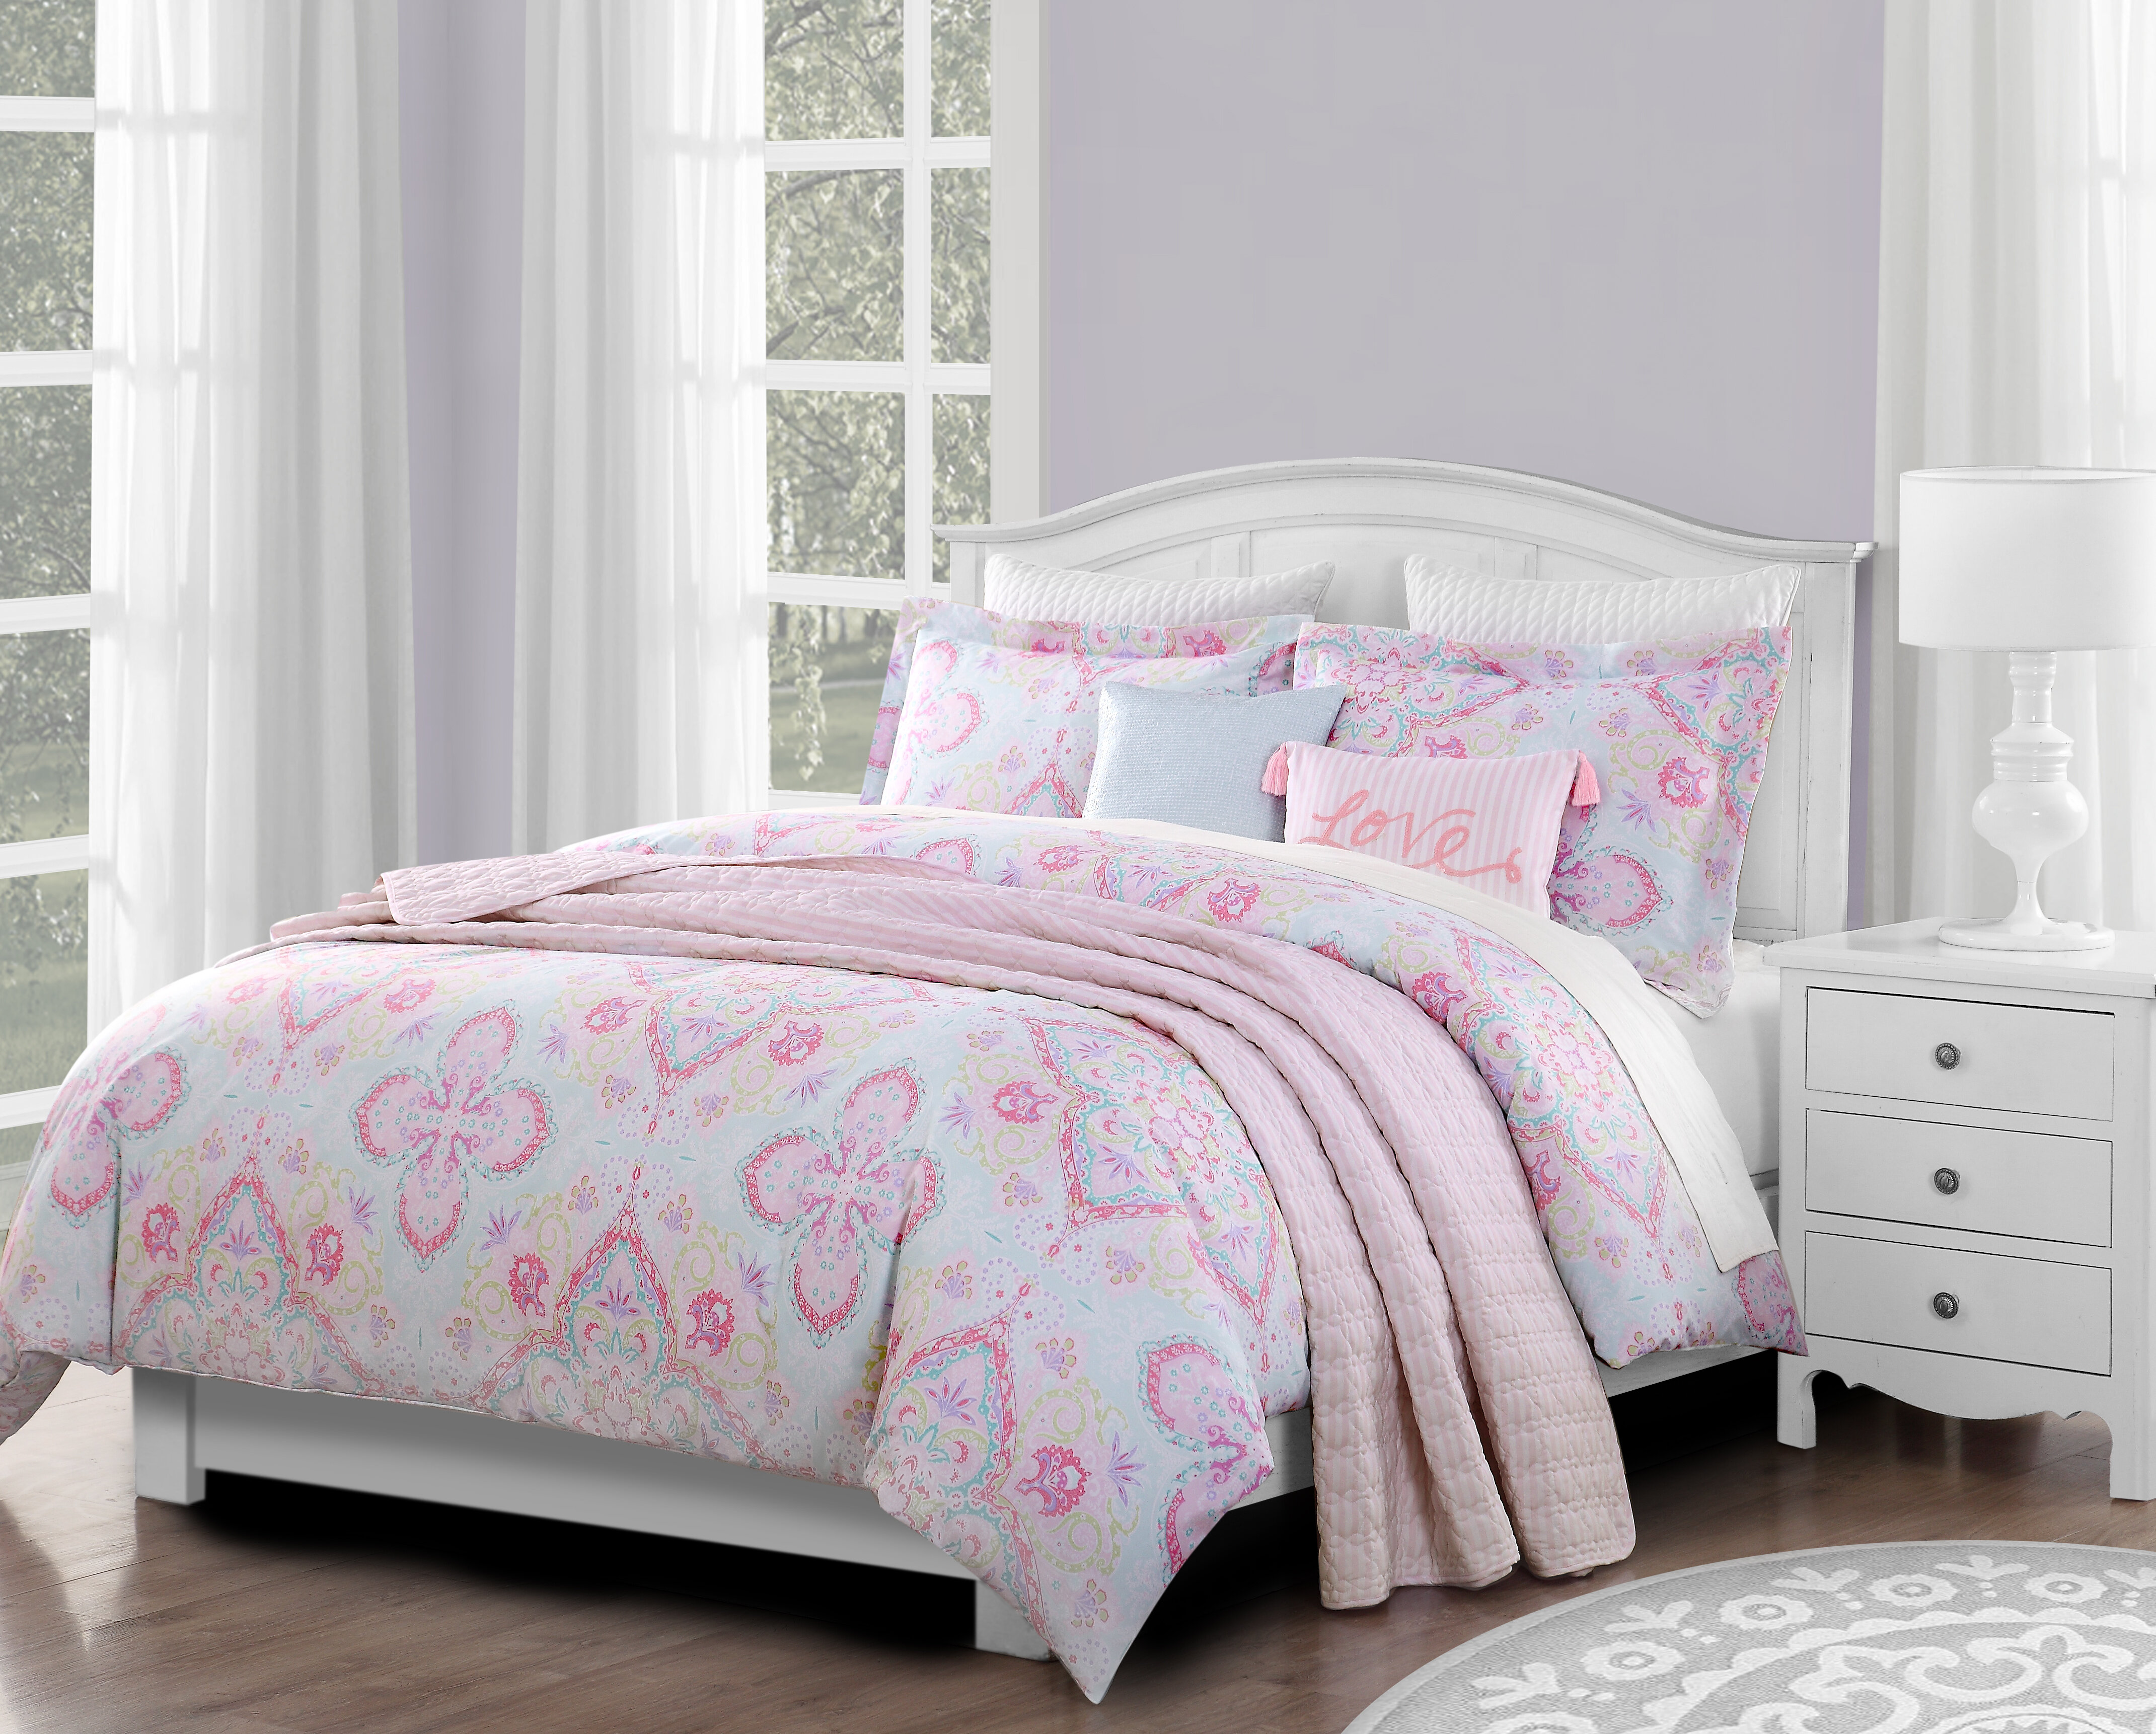 quilts pink tide southern comforter nordstrom c comforters